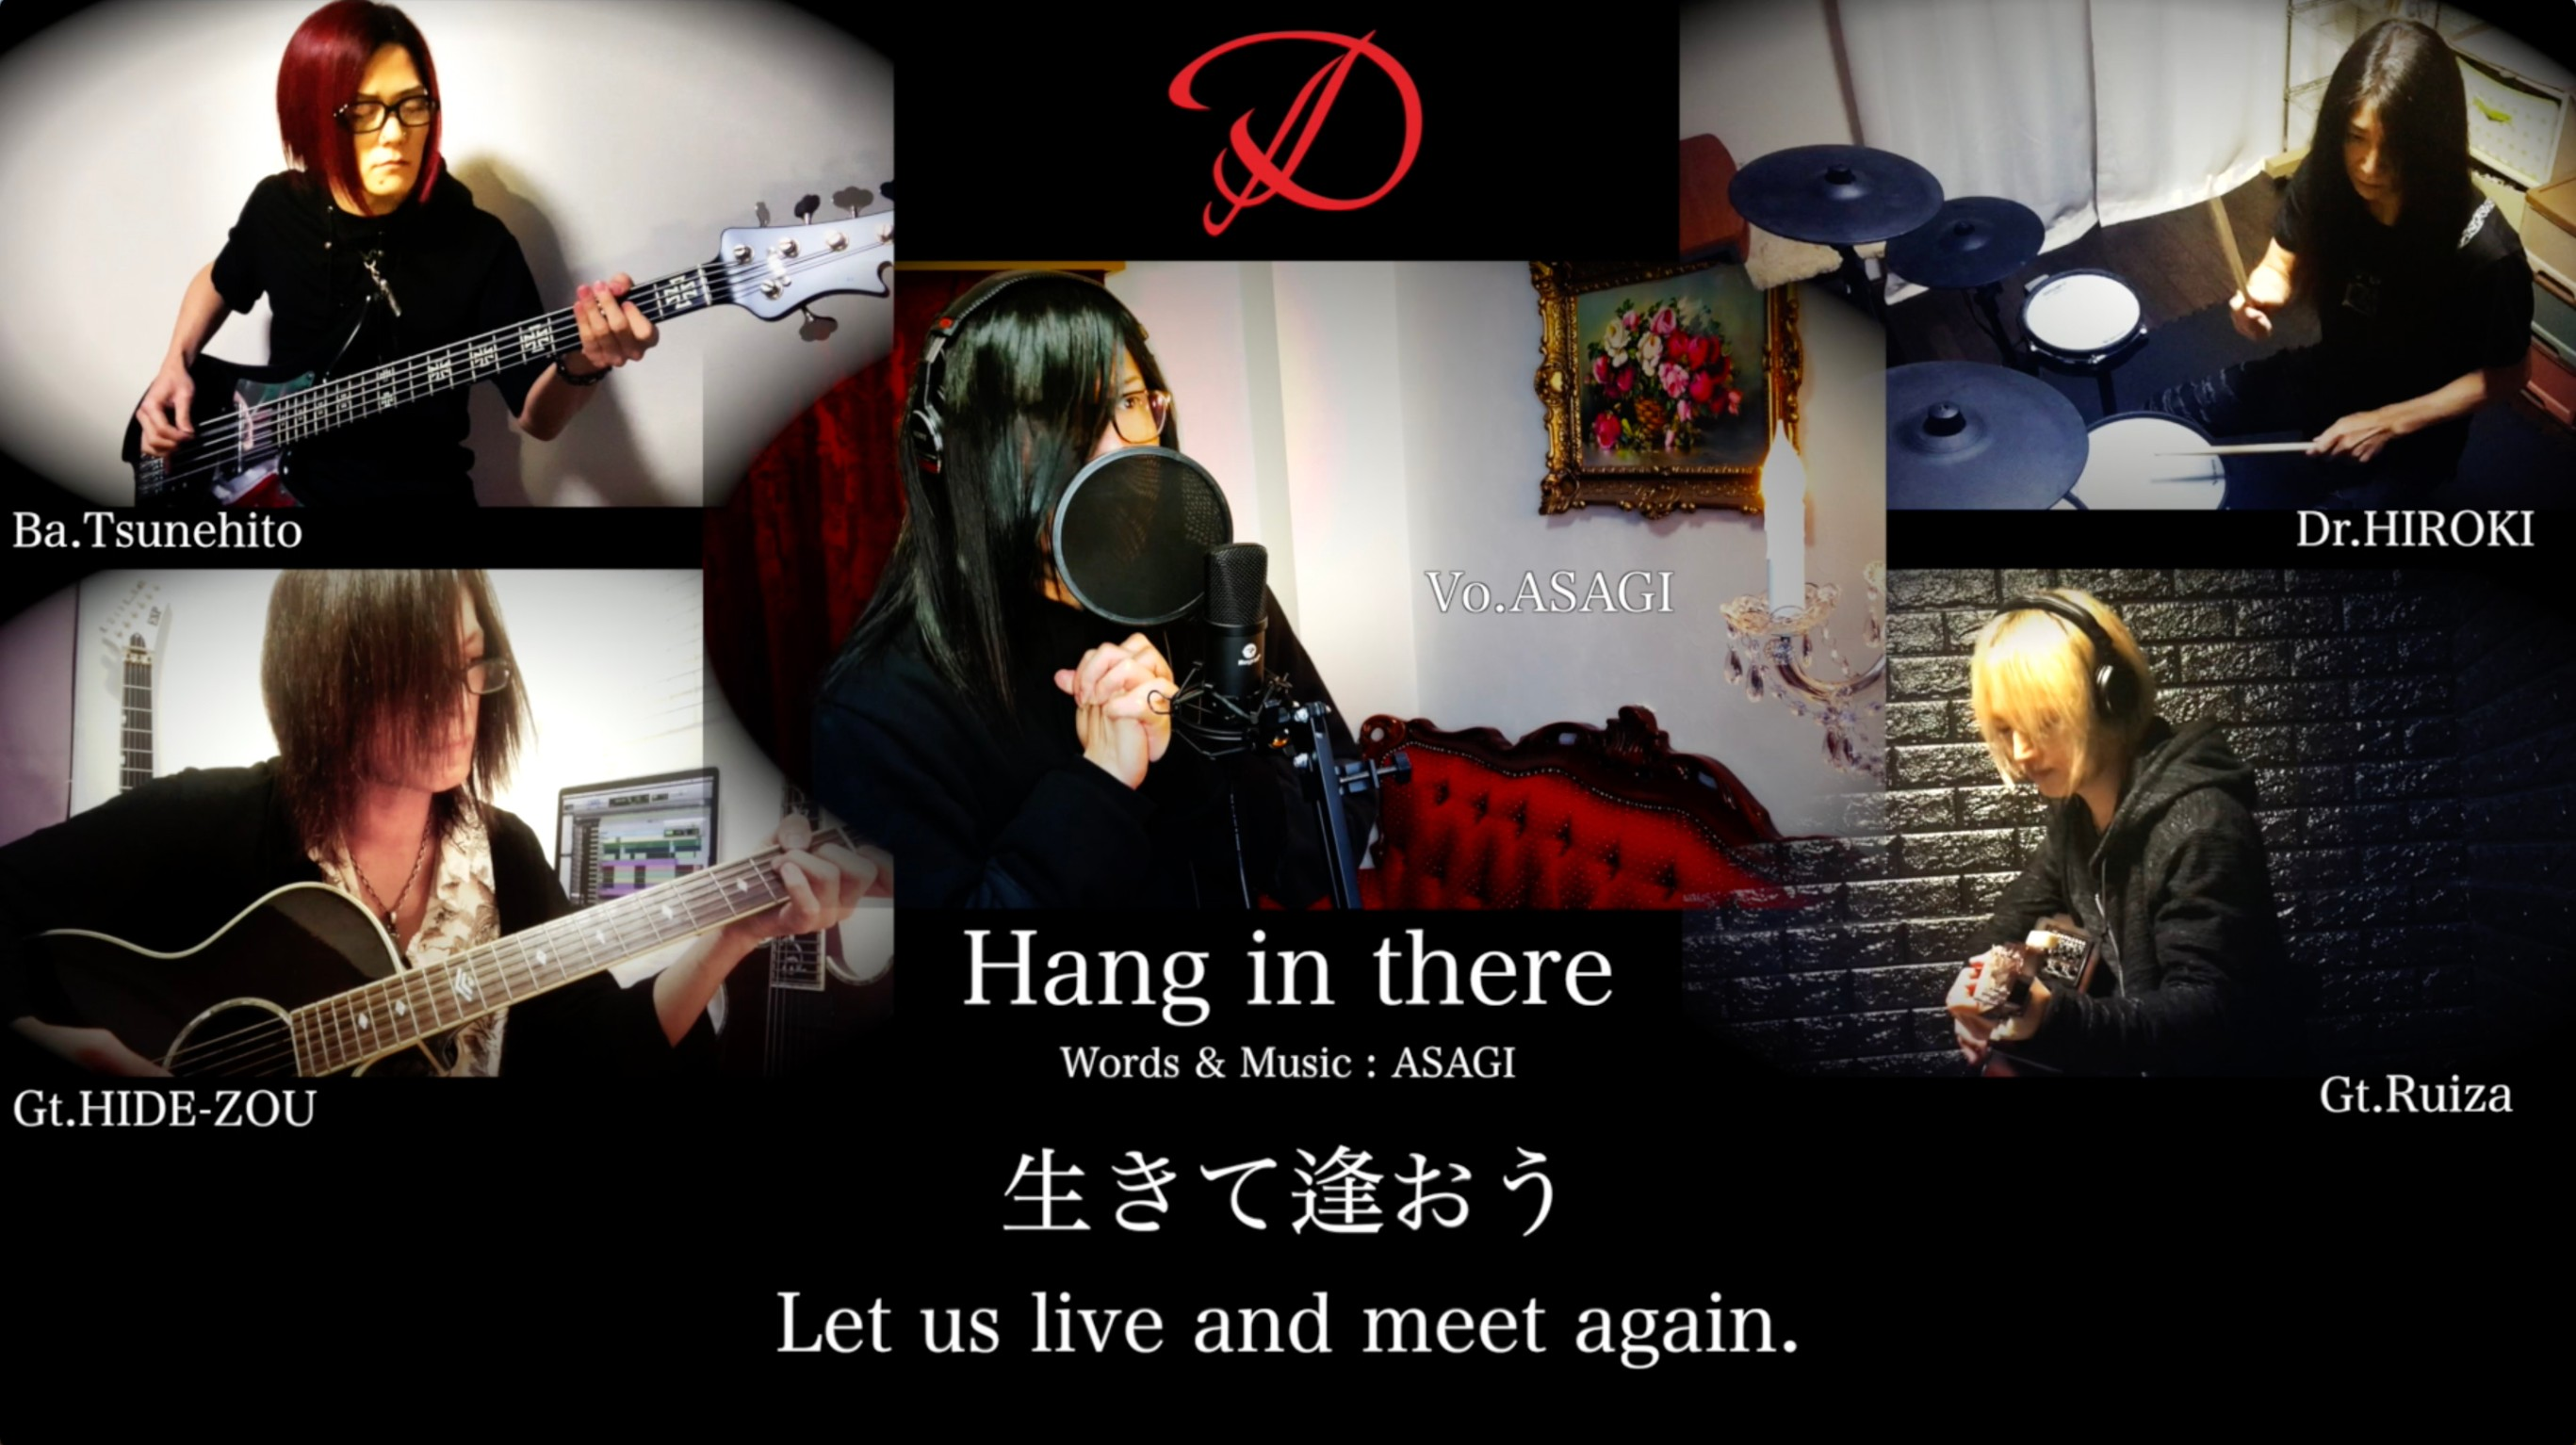 0、D新曲「Hang in there」画像